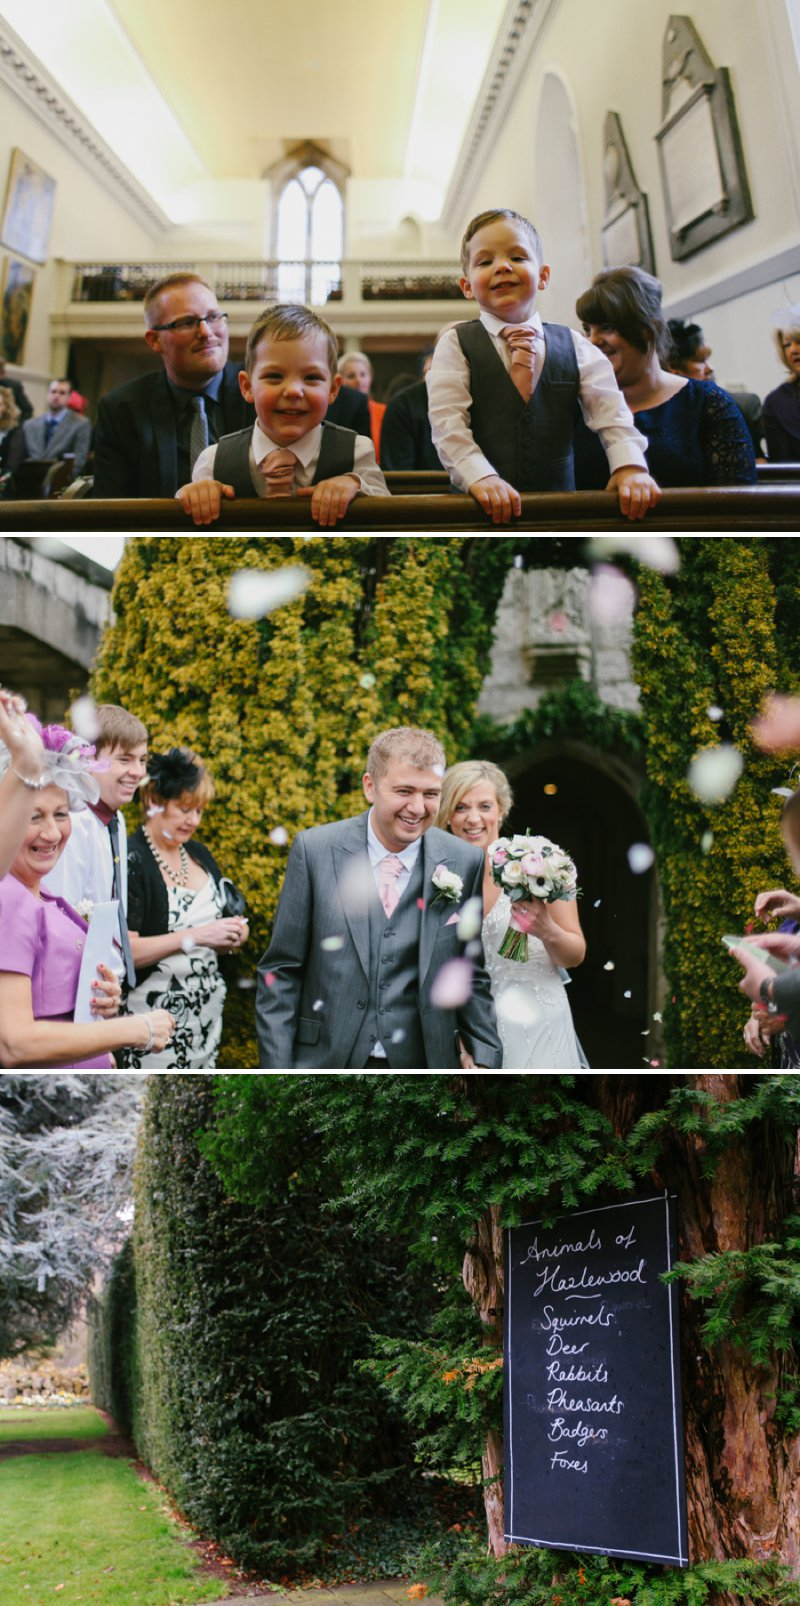 Vintage Inspired Wedding At Hazlewood Castle In Yorkshire With Bride In Foxglove By Jenny Packham And Bridesmaids In Pink Dresses From Coast With A Firework Display 5